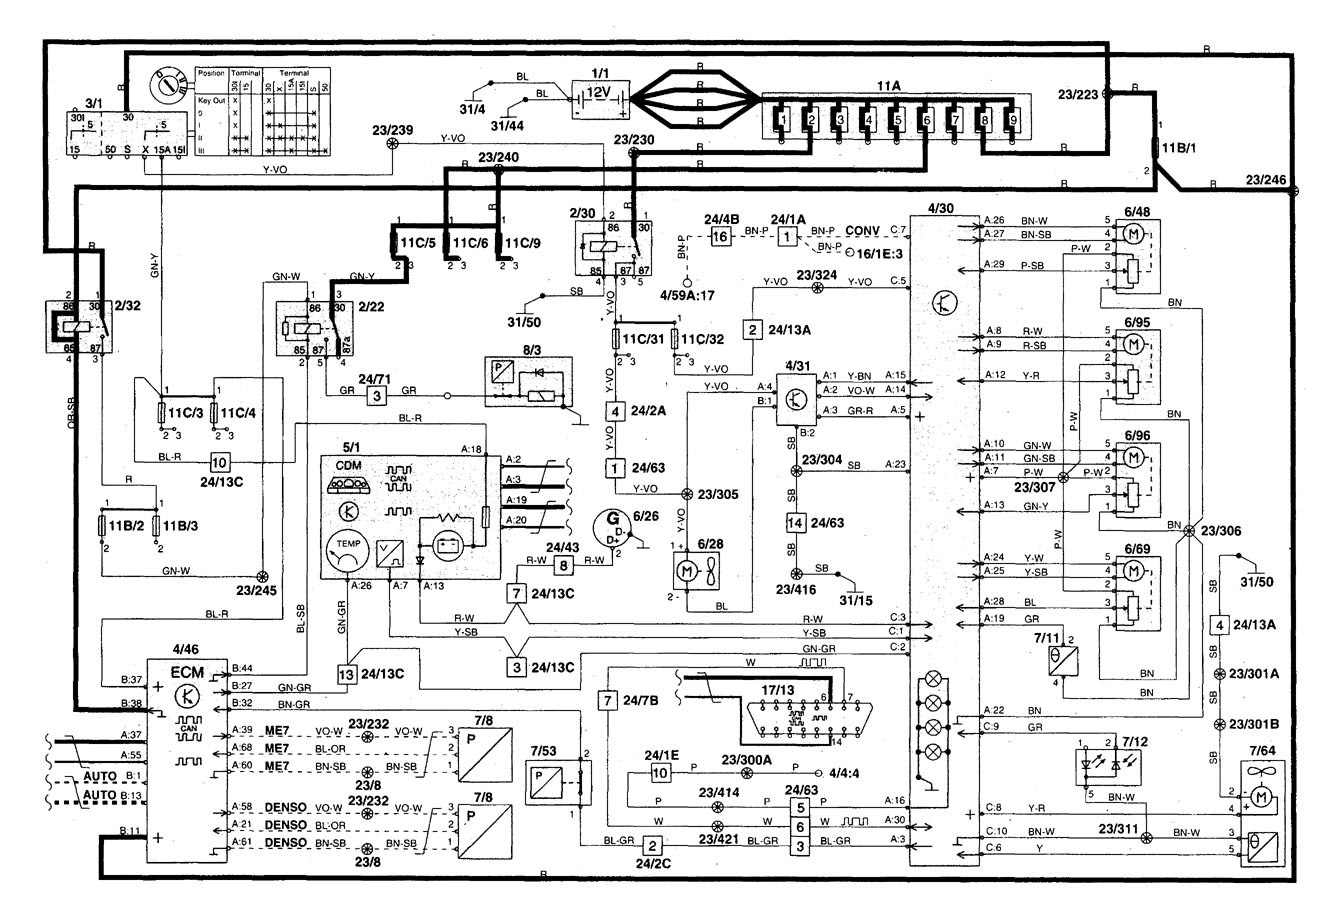 Volvo V70 Radio Wiring Diagram Simple Electrical Vr300 Electronicswiring Ford Mustang